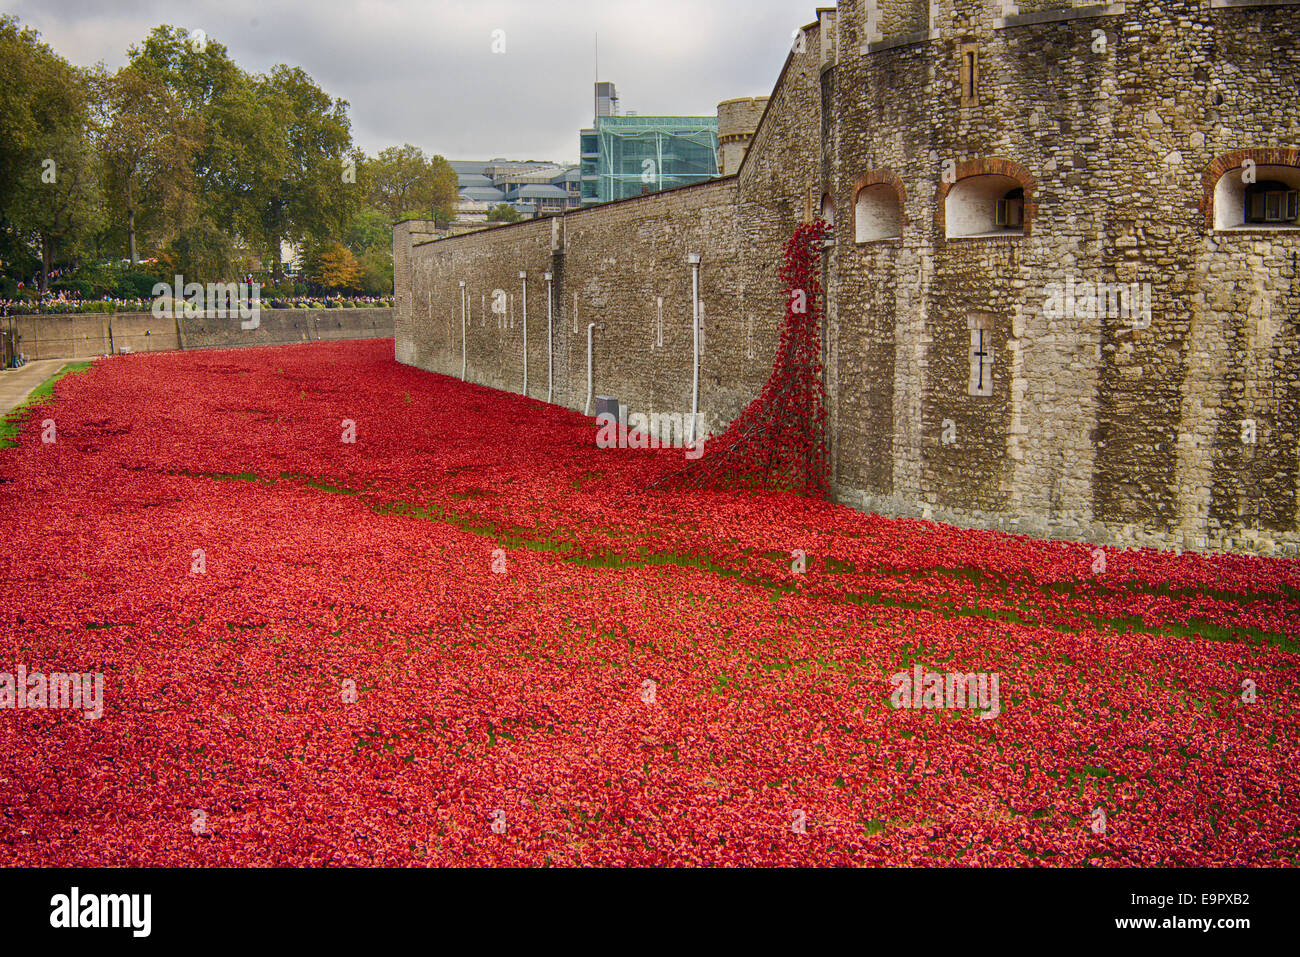 "North side of the tower of London showing the poppy installation 'Blood Swept Lands and Seas of Red"" Stock Photo"